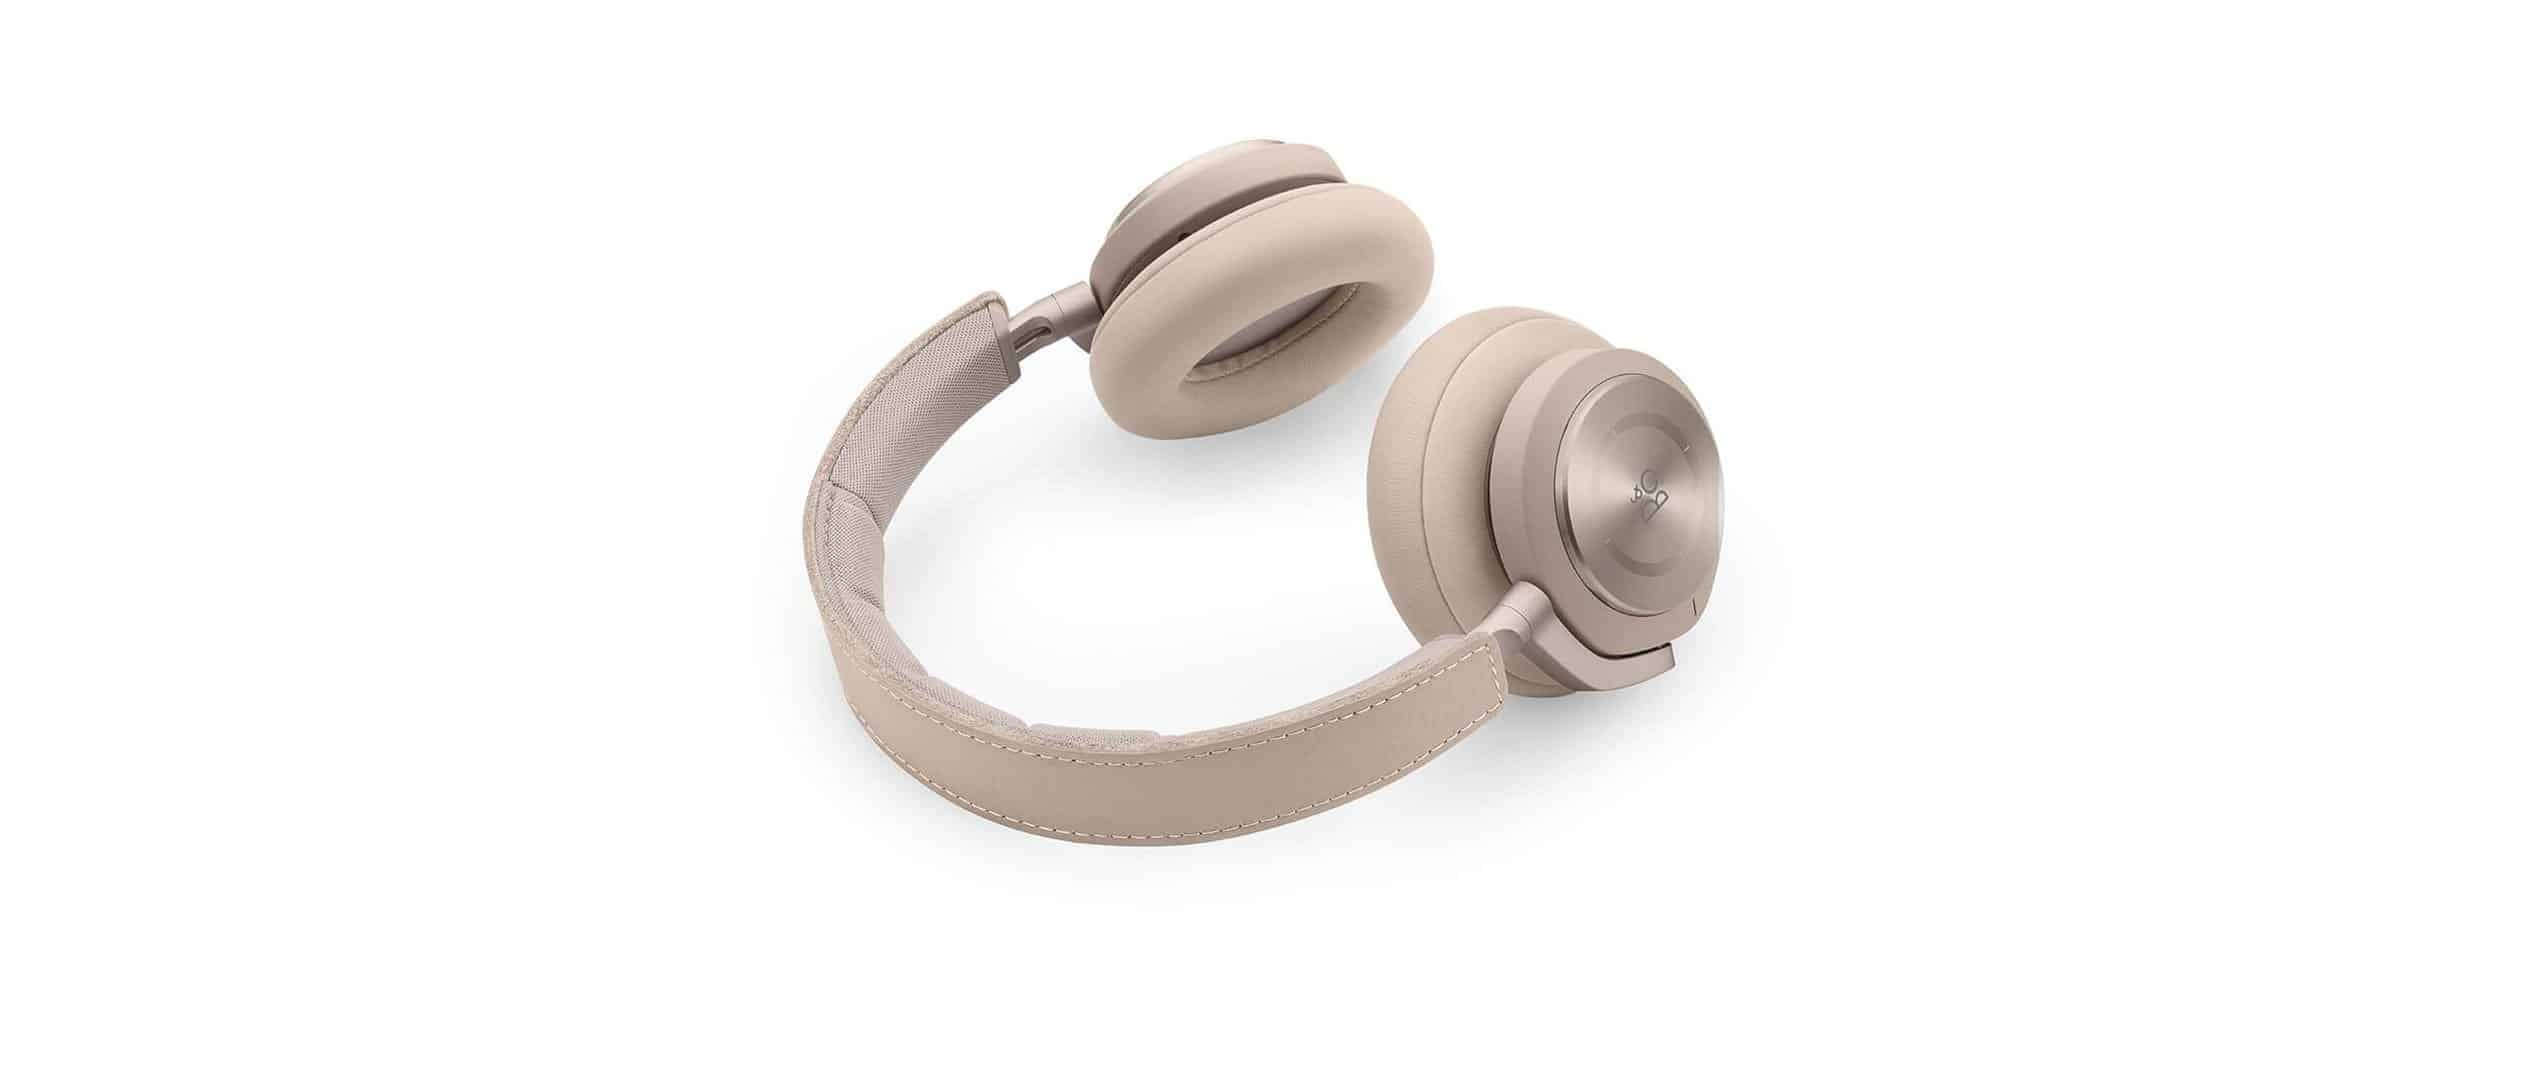 Beoplay H9i 5